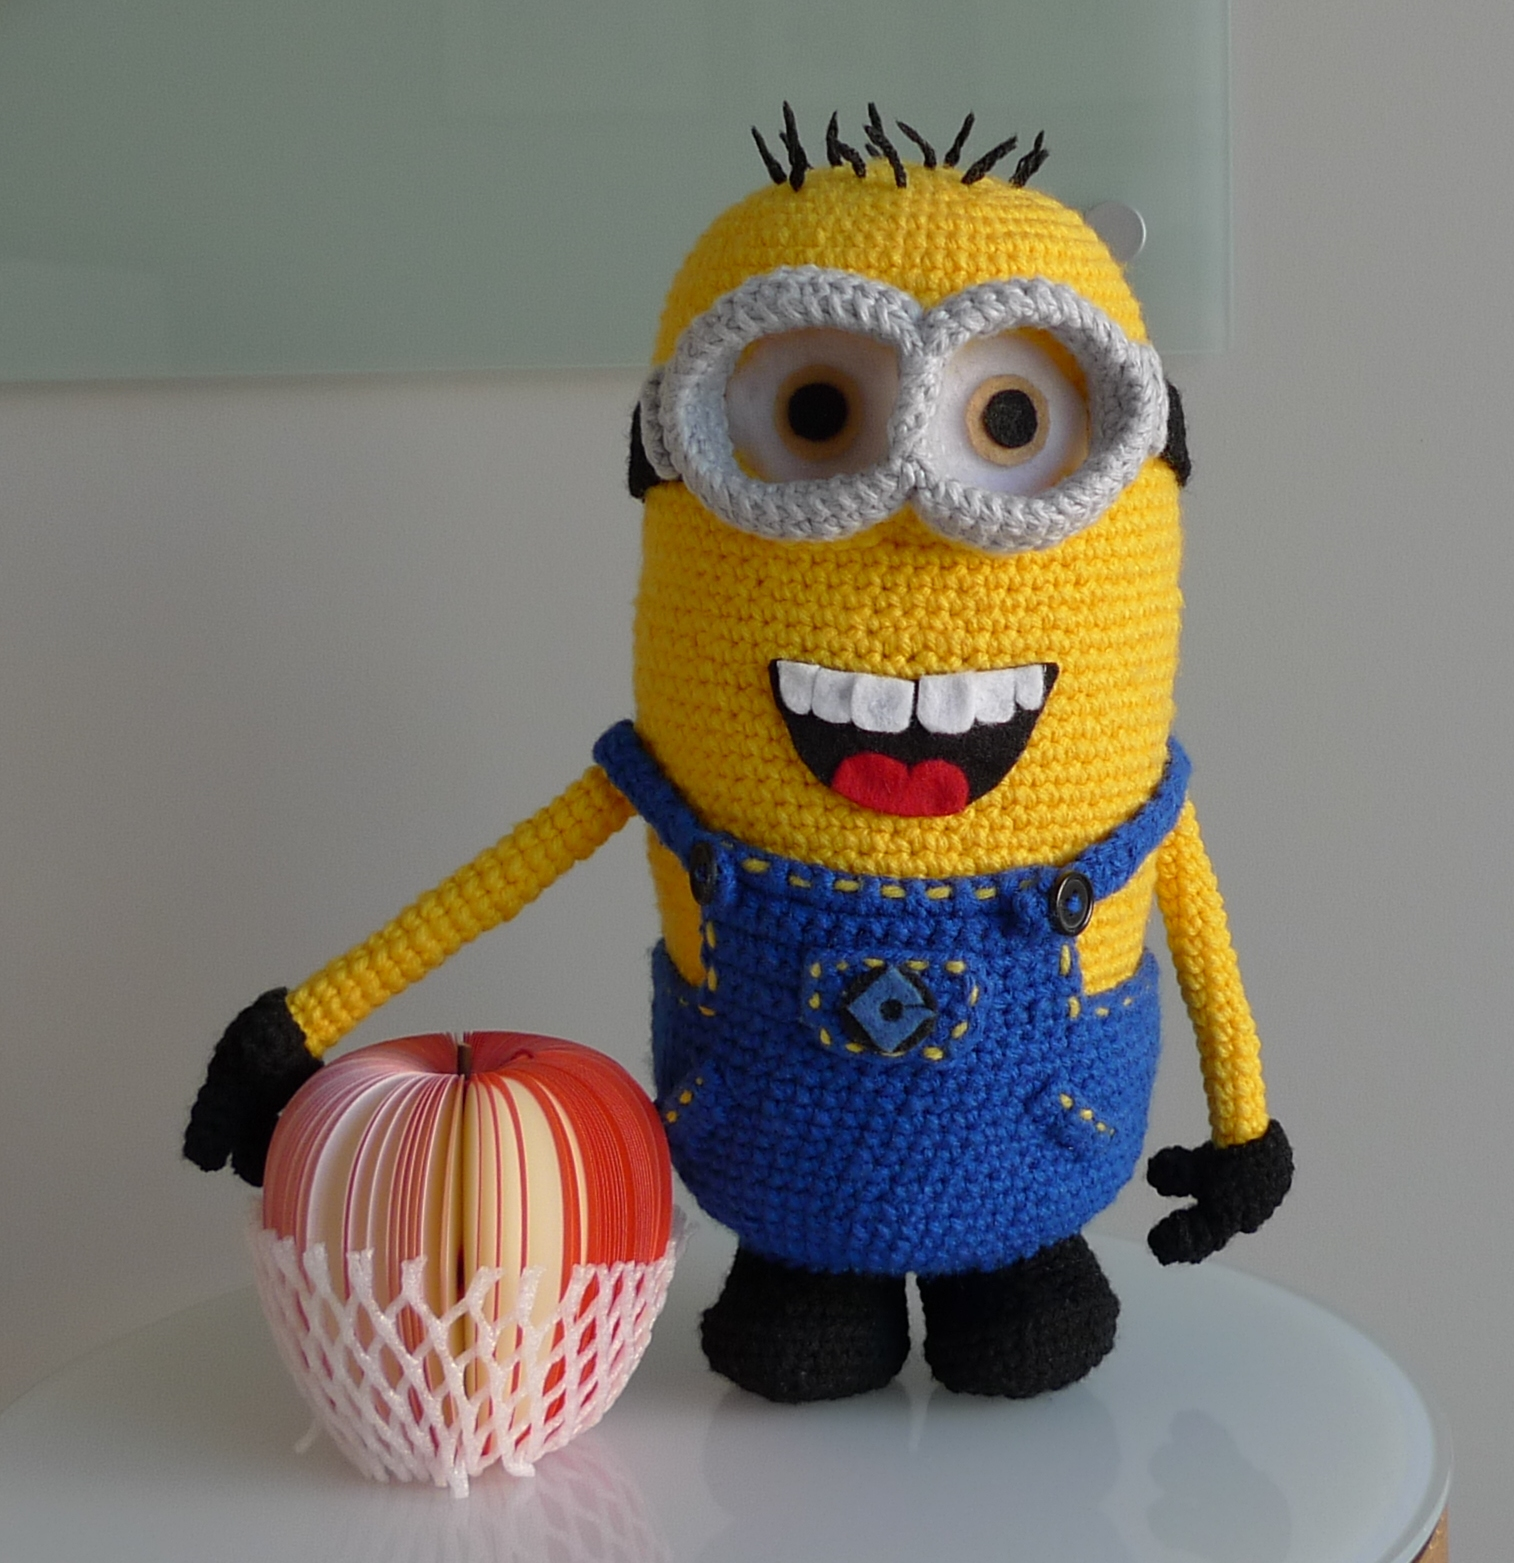 Despicable Me Minion Crochet Pattern Crochet Kingdom